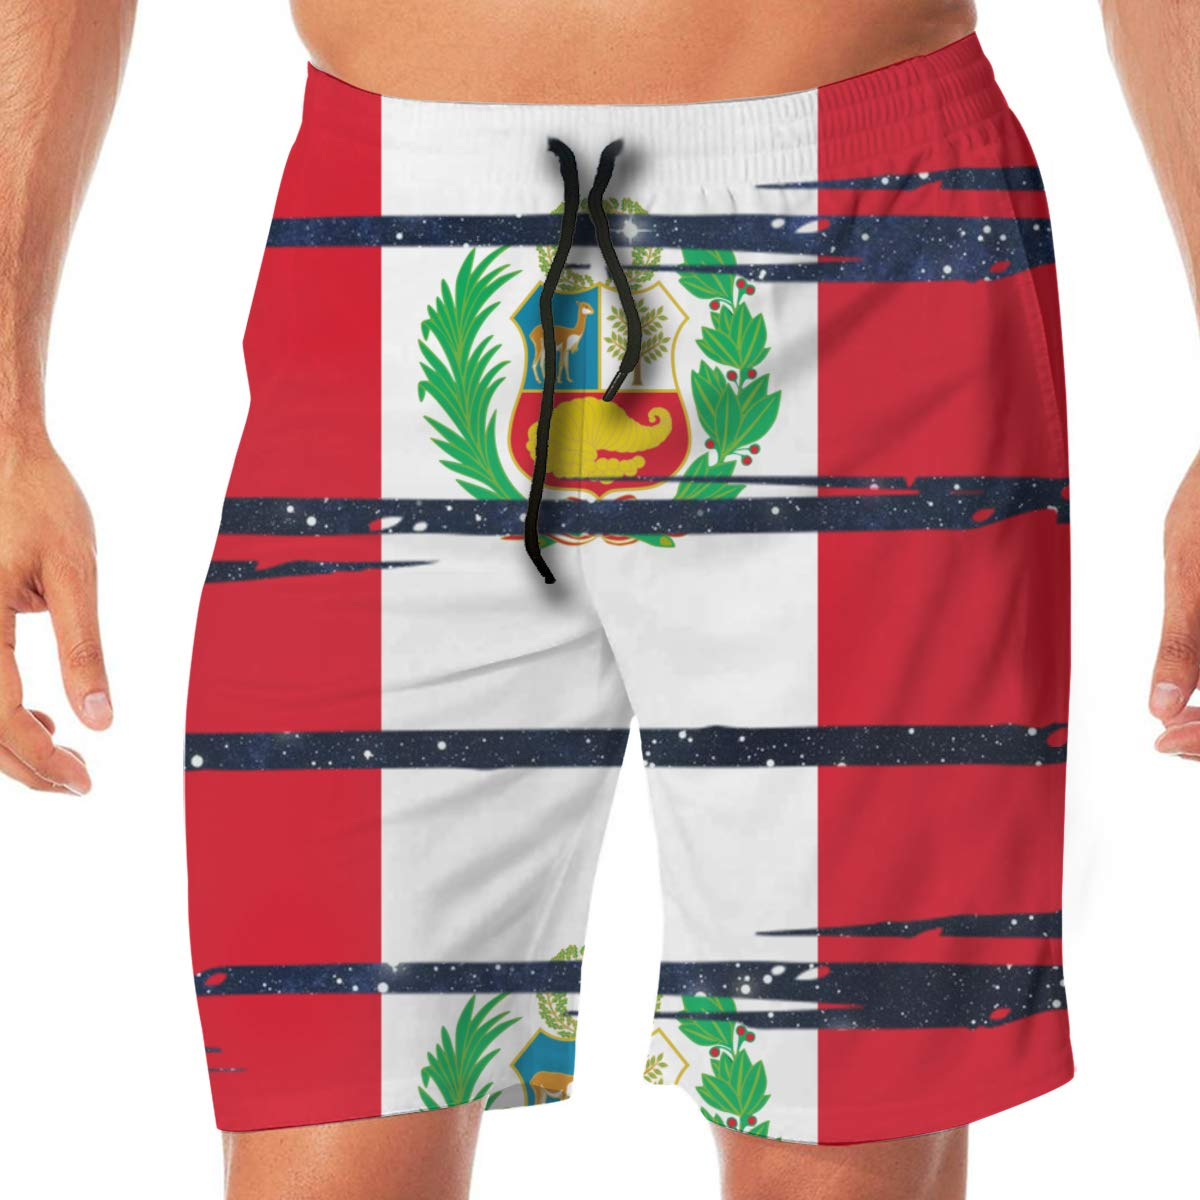 YGE.I.L25 Mens Workout Shorts Peru Flag Summer Vacation Beach Board Short for Men